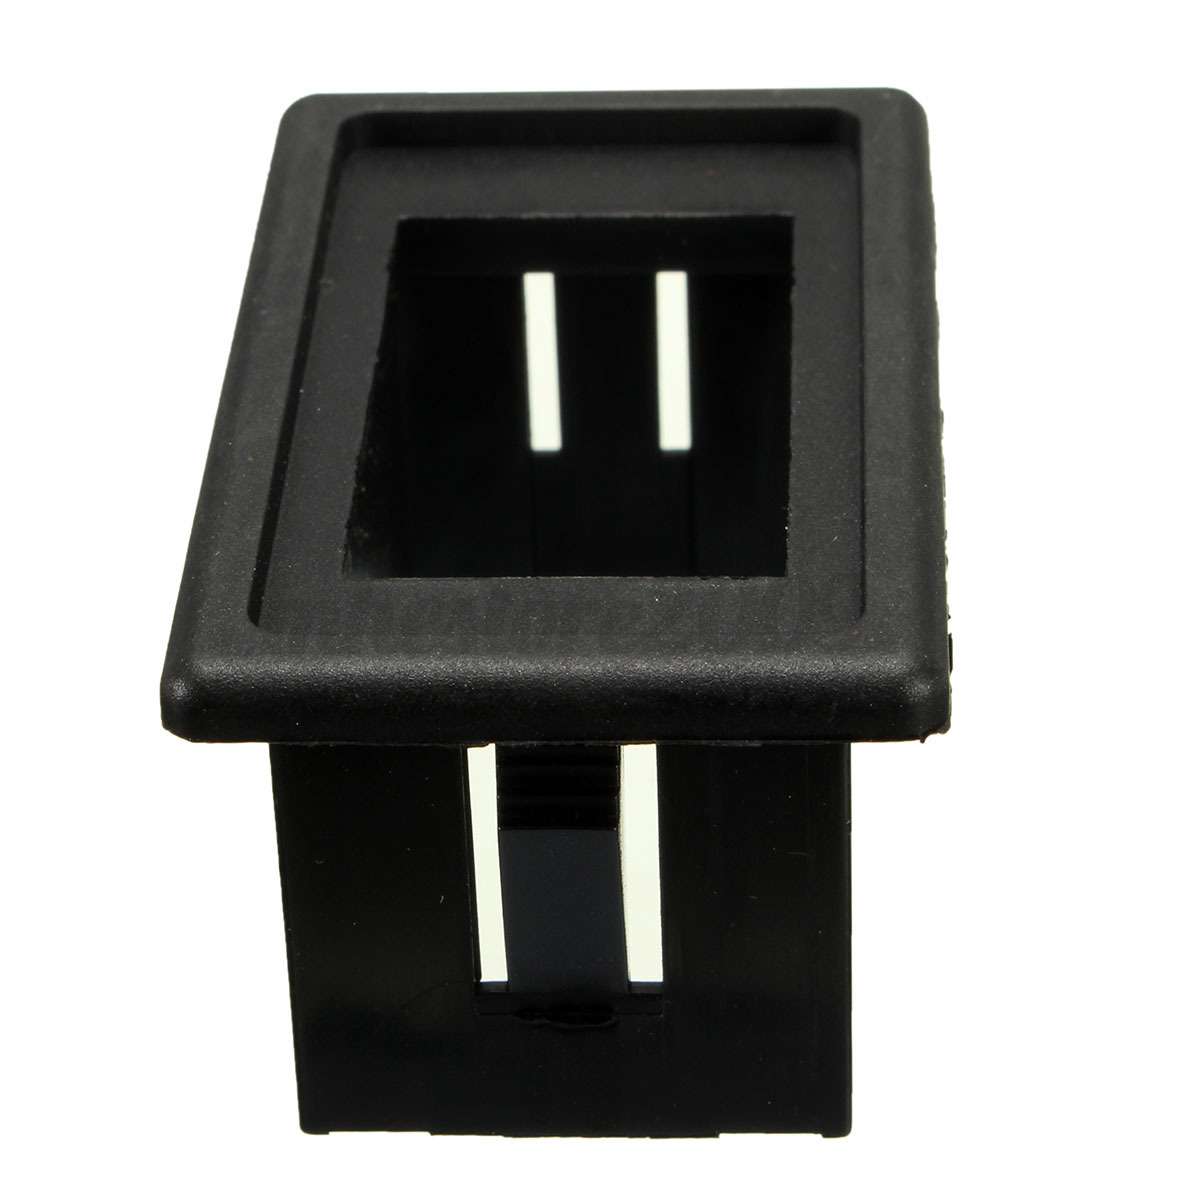 Car Boat Marine Clip Holder Housing Assembly For Arb Carling Rocker 12 Volt Toggle Switch Switches 5 Of 7 Panel